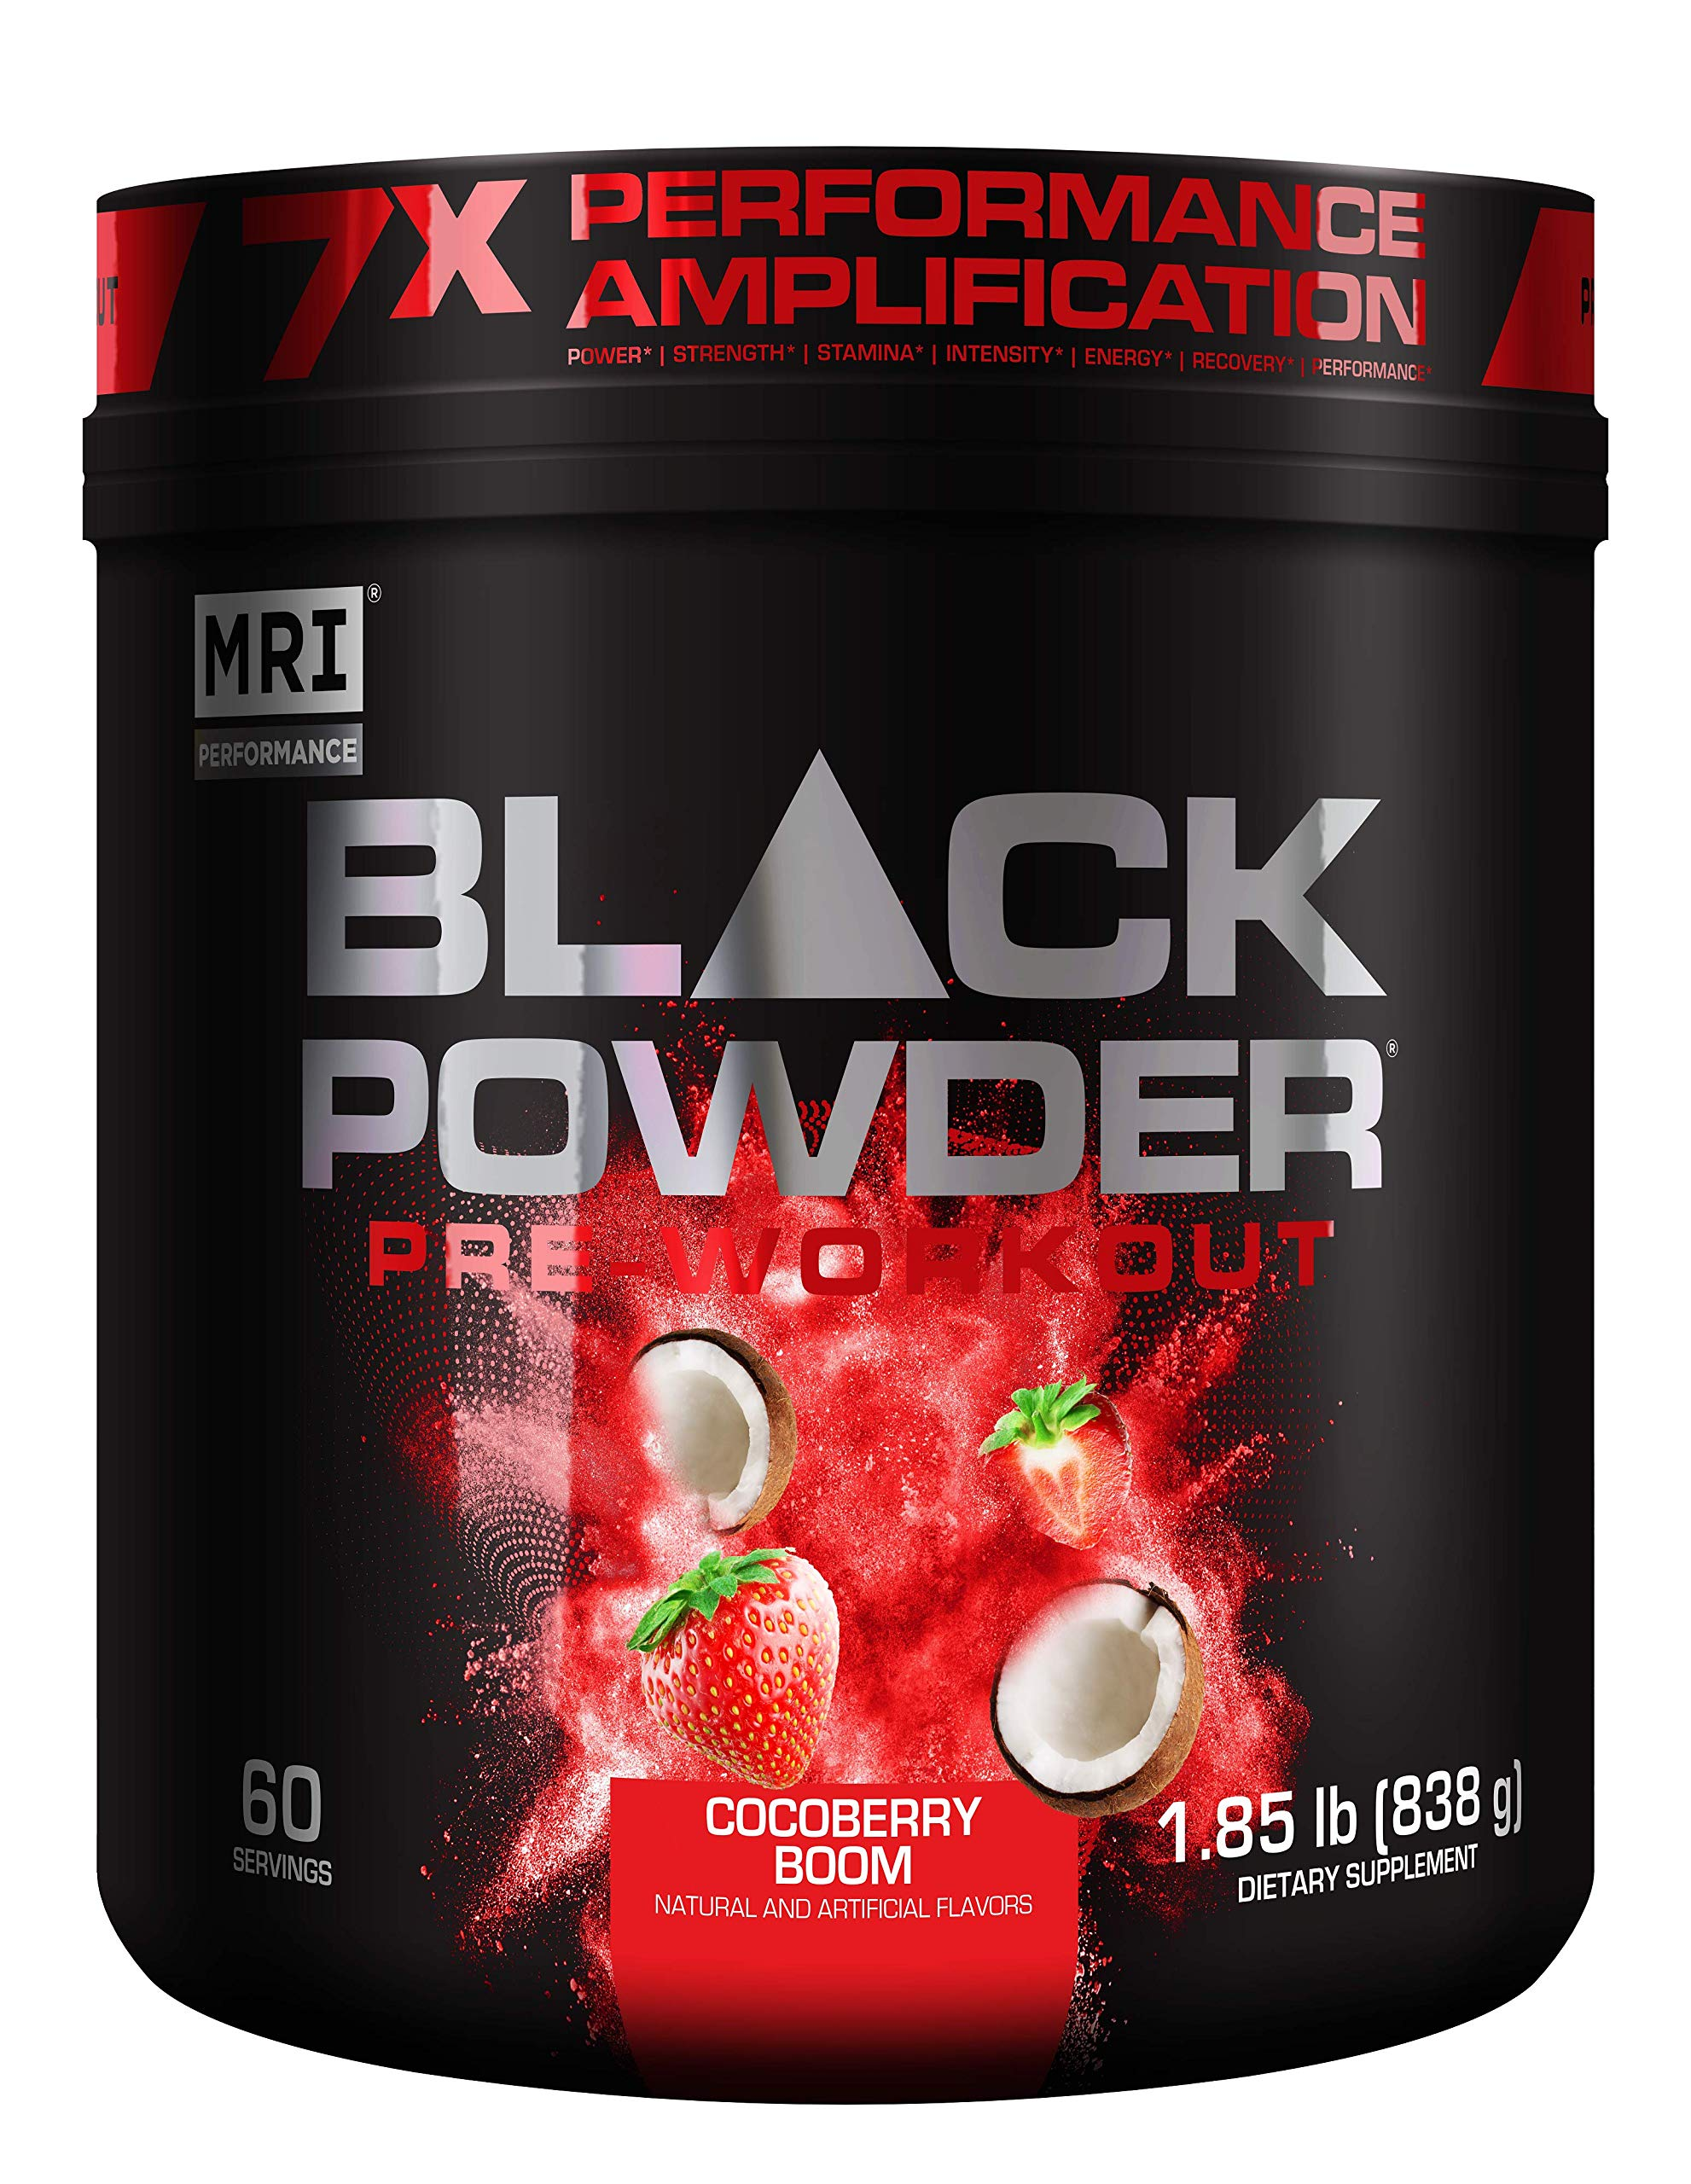 MRI Black Powder Pre-Workout Powder - Explosive Energy & Stamina - Intense Strength and Focus - Build Muscle - Recover Faster – Creatine - 60 Servings (Cocoberry Boom)